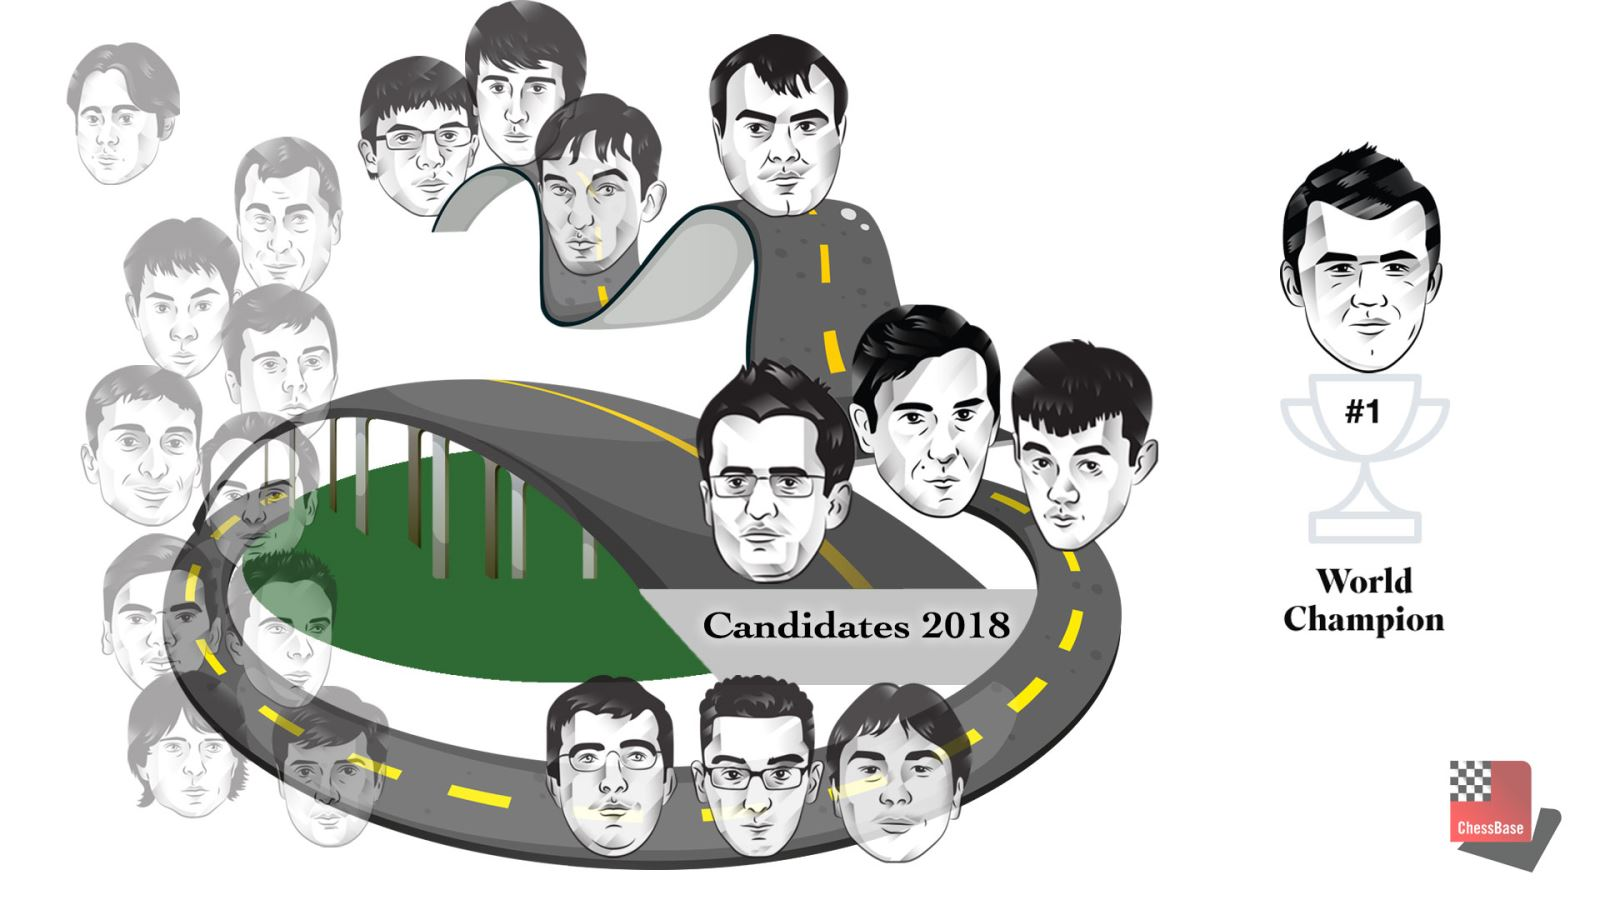 Road to Candidates